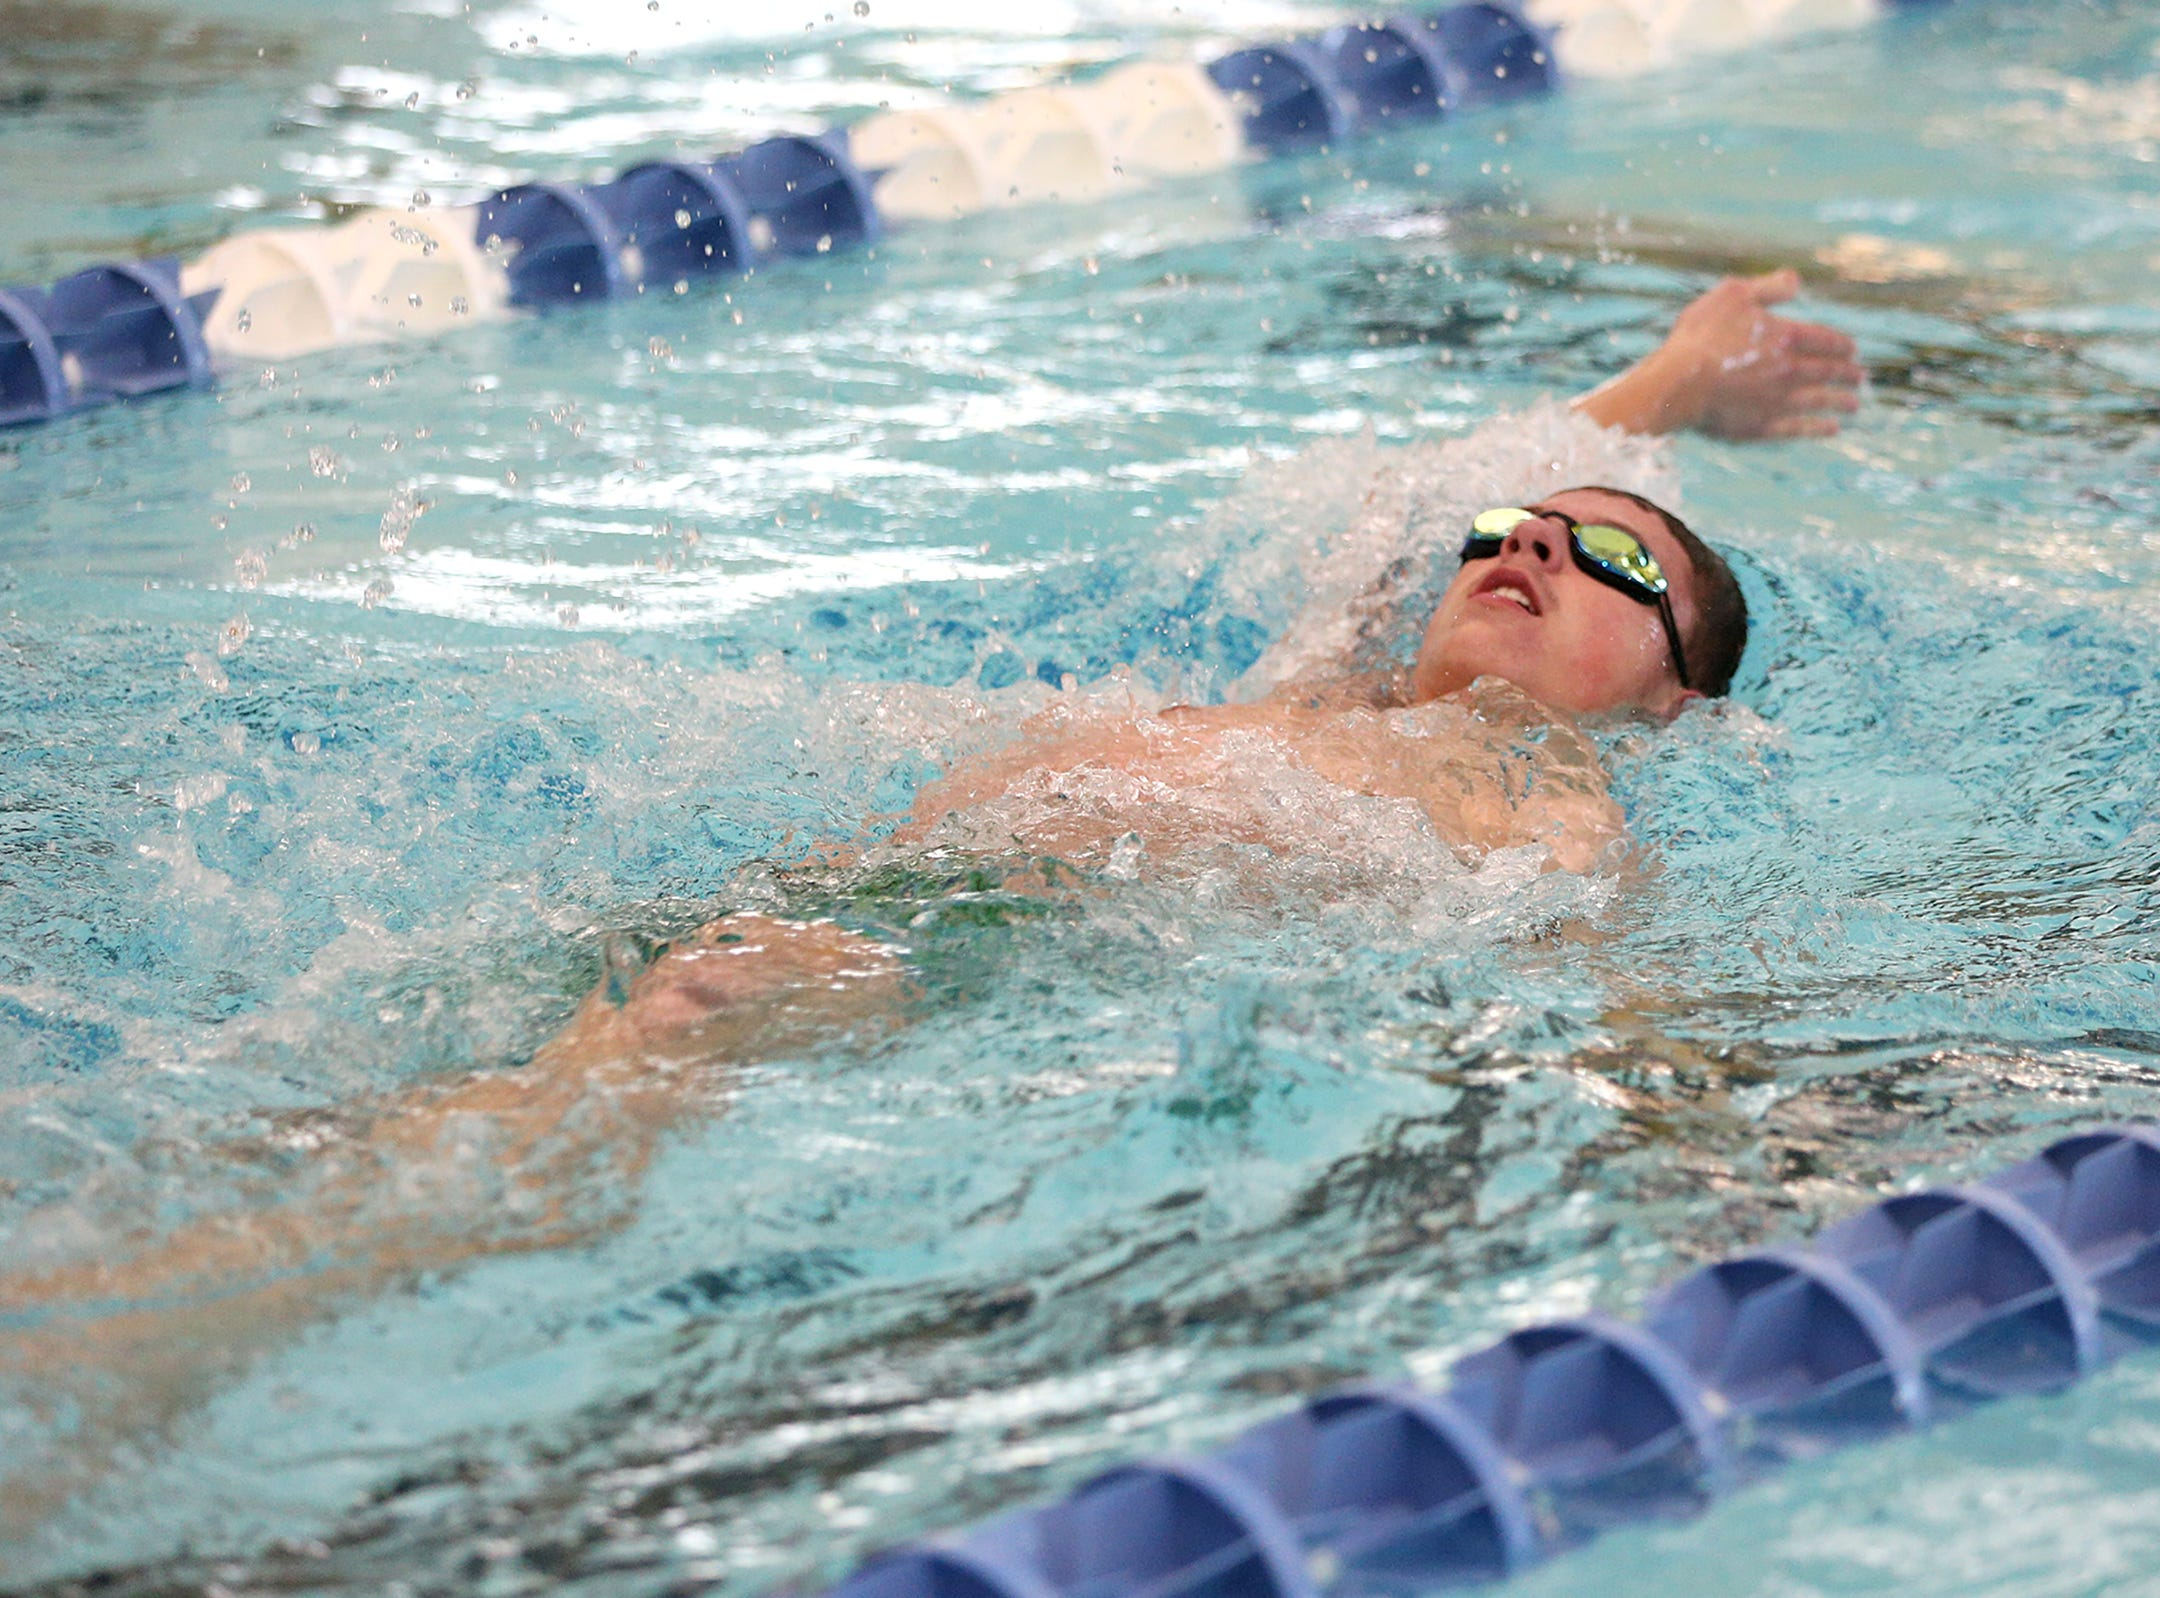 West Salem High School freshman Benjamin Smith during the boys 200 IM at the Kroc Center on Tuesday, Jan. 29, 2019.